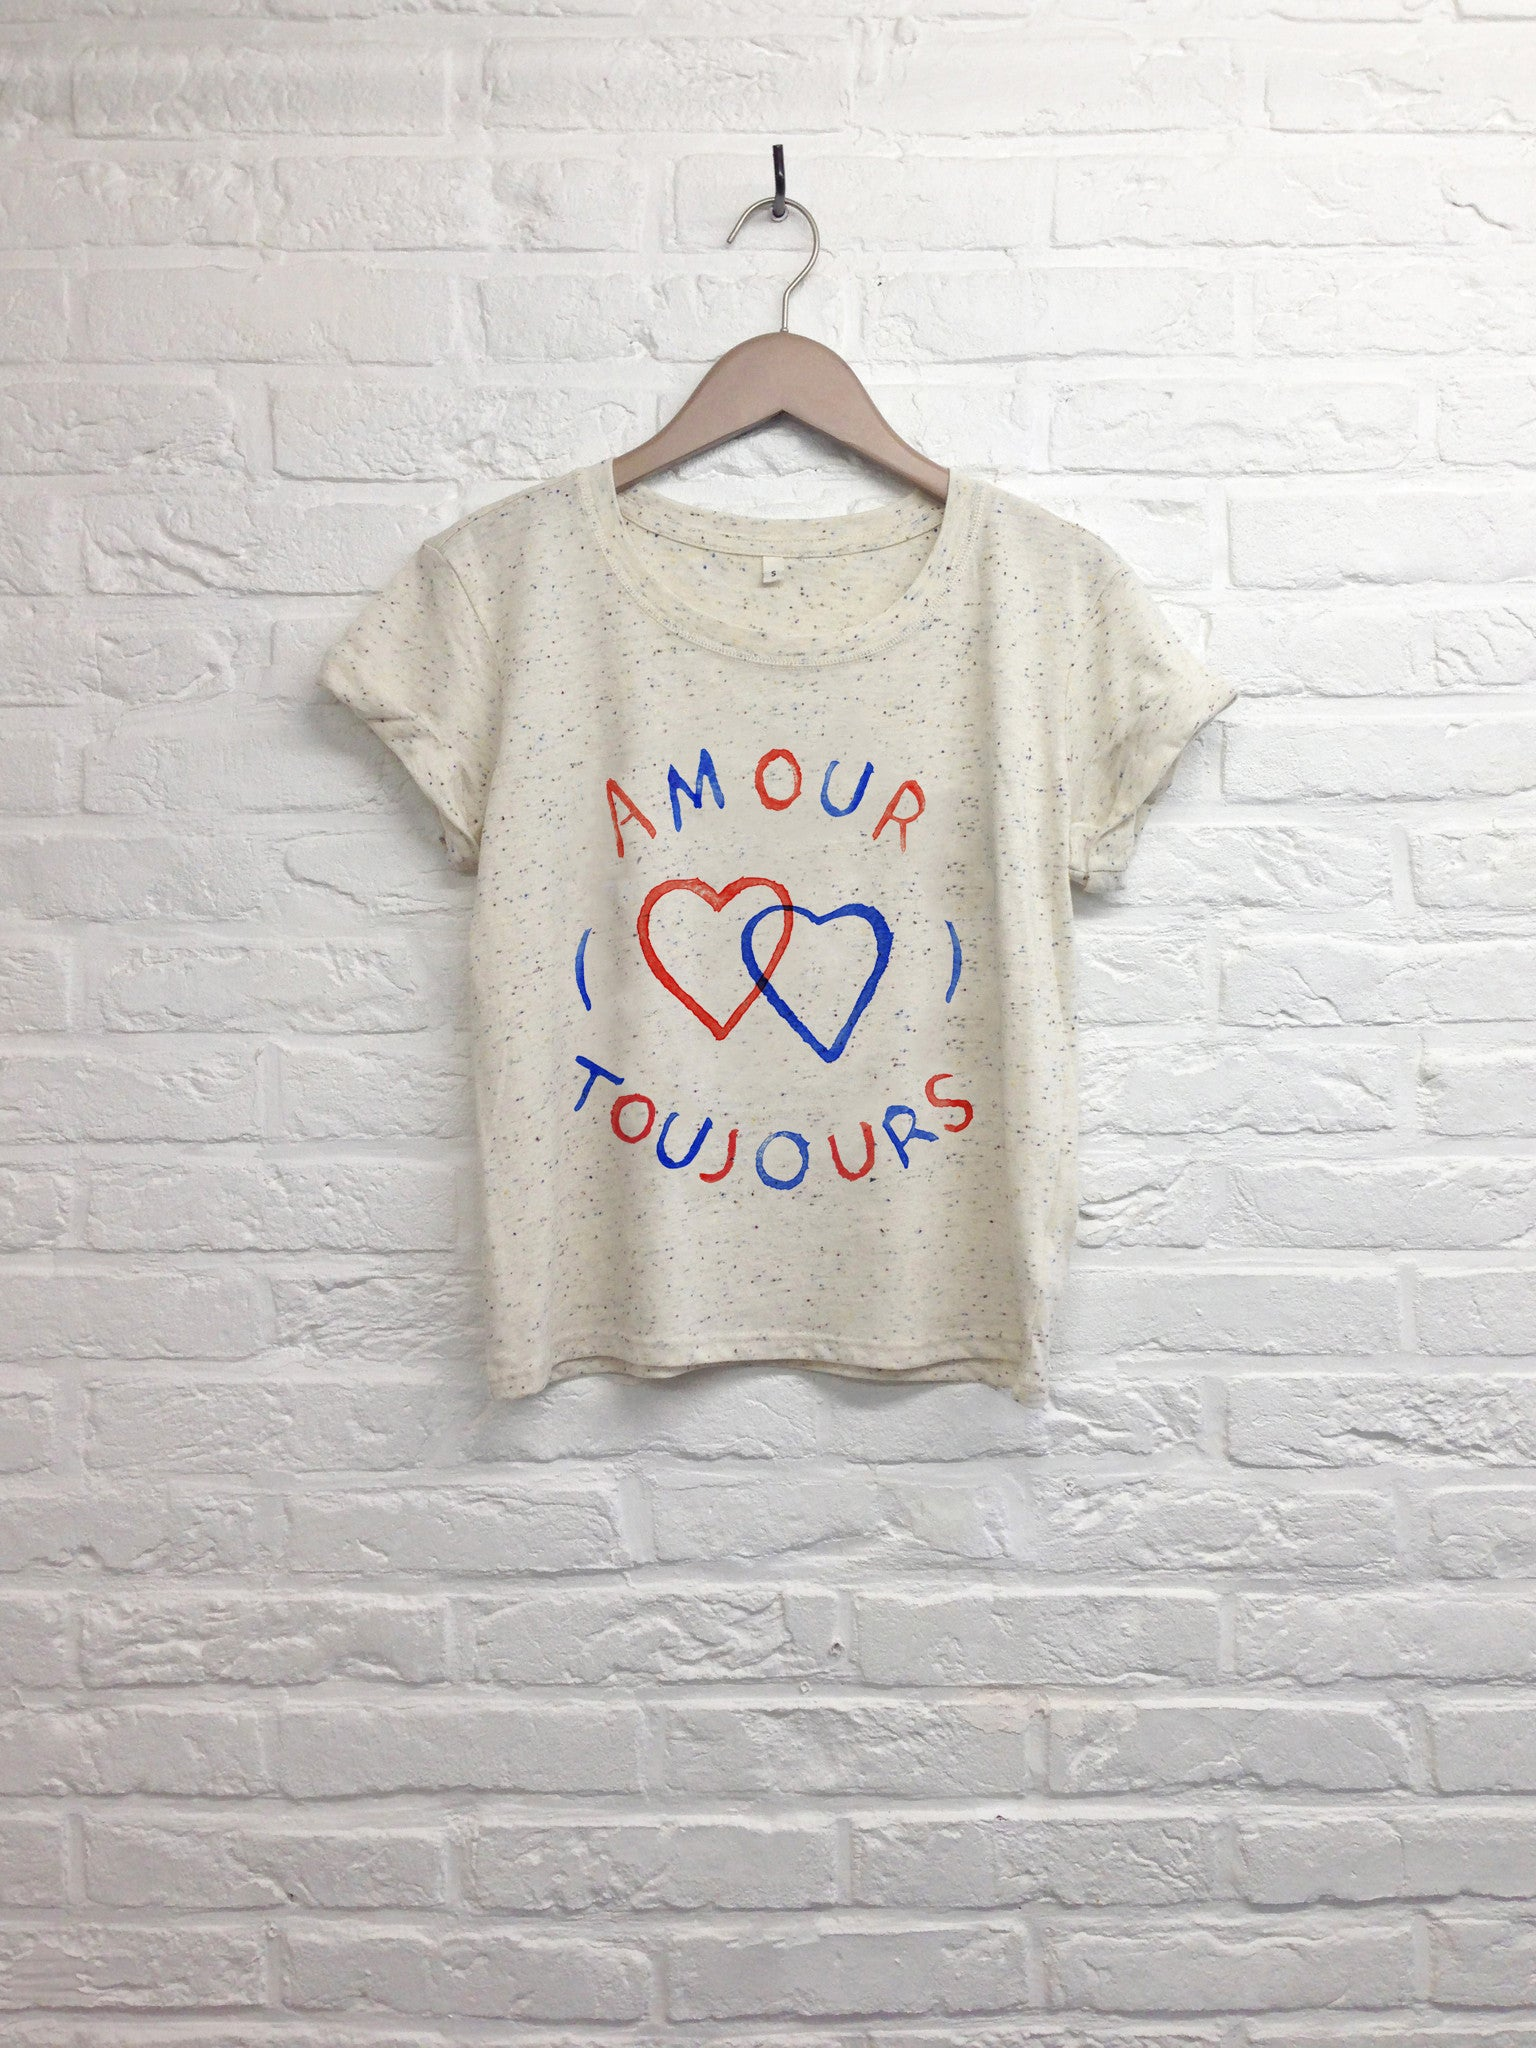 TH Gallery -  Amour Toujours - Crop top speckled Cream-T shirt-Atelier Amelot